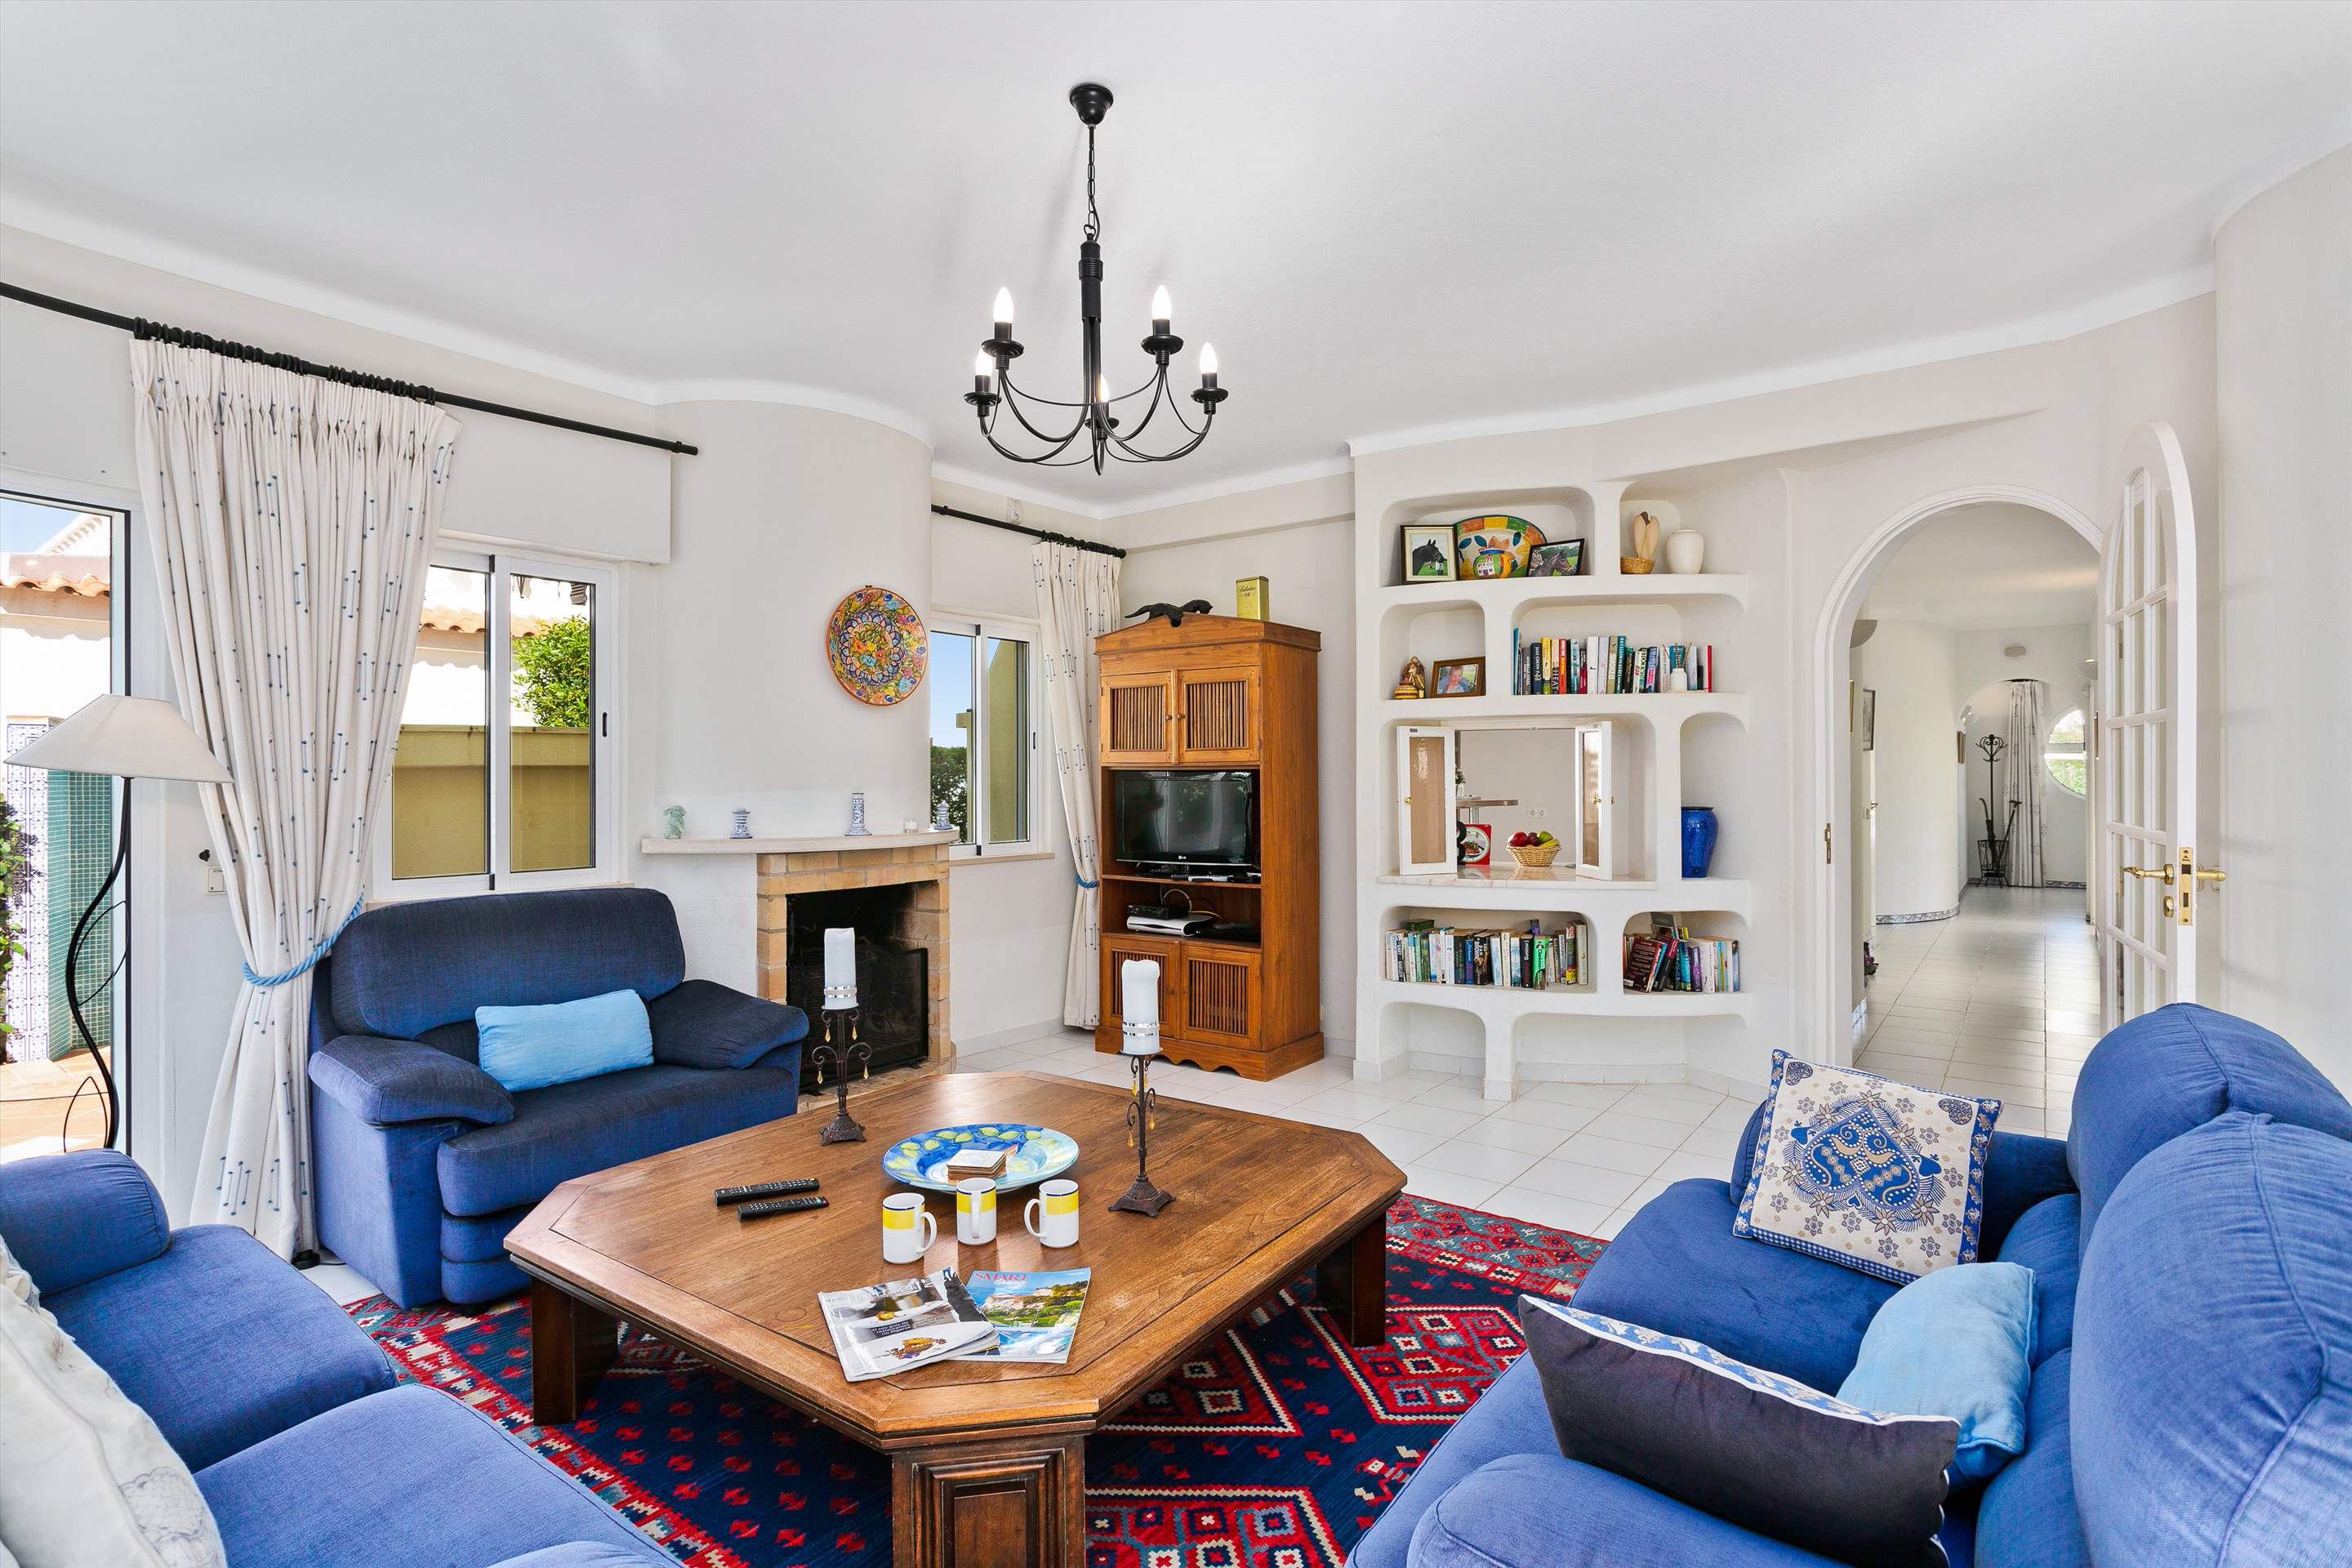 Villa Sarina, 4 bedroom villa in Vilamoura Area, Algarve Photo #3